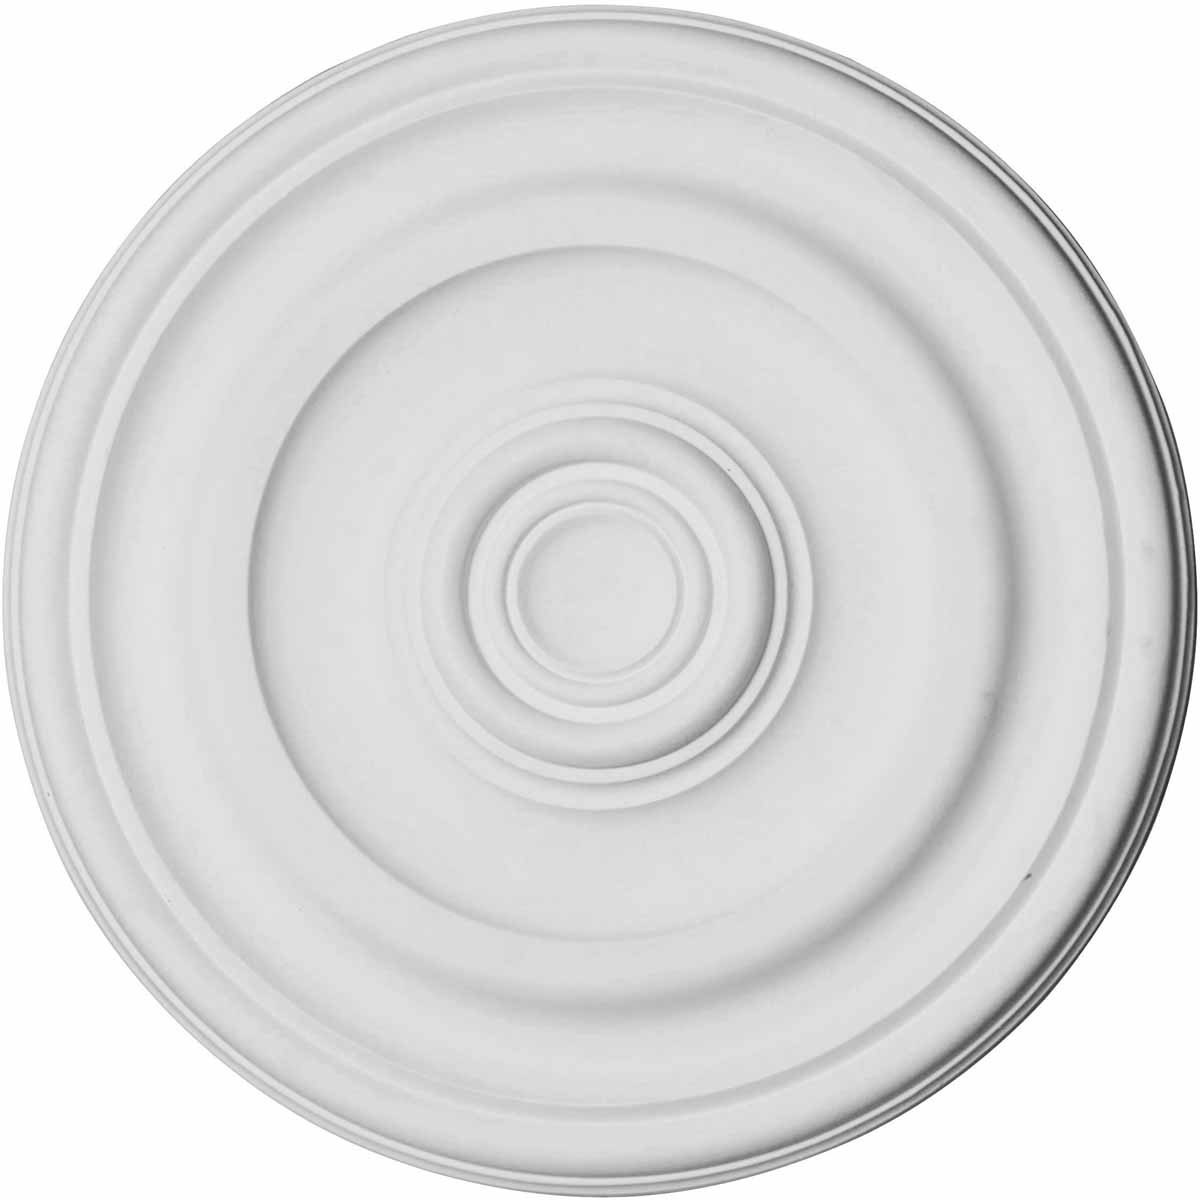 """EM-CM12KP - 11 7/8""""OD x 1 1/4""""P Kepler Traditional Ceiling Medallion (For Canopies up to 2 5/8"""")"""